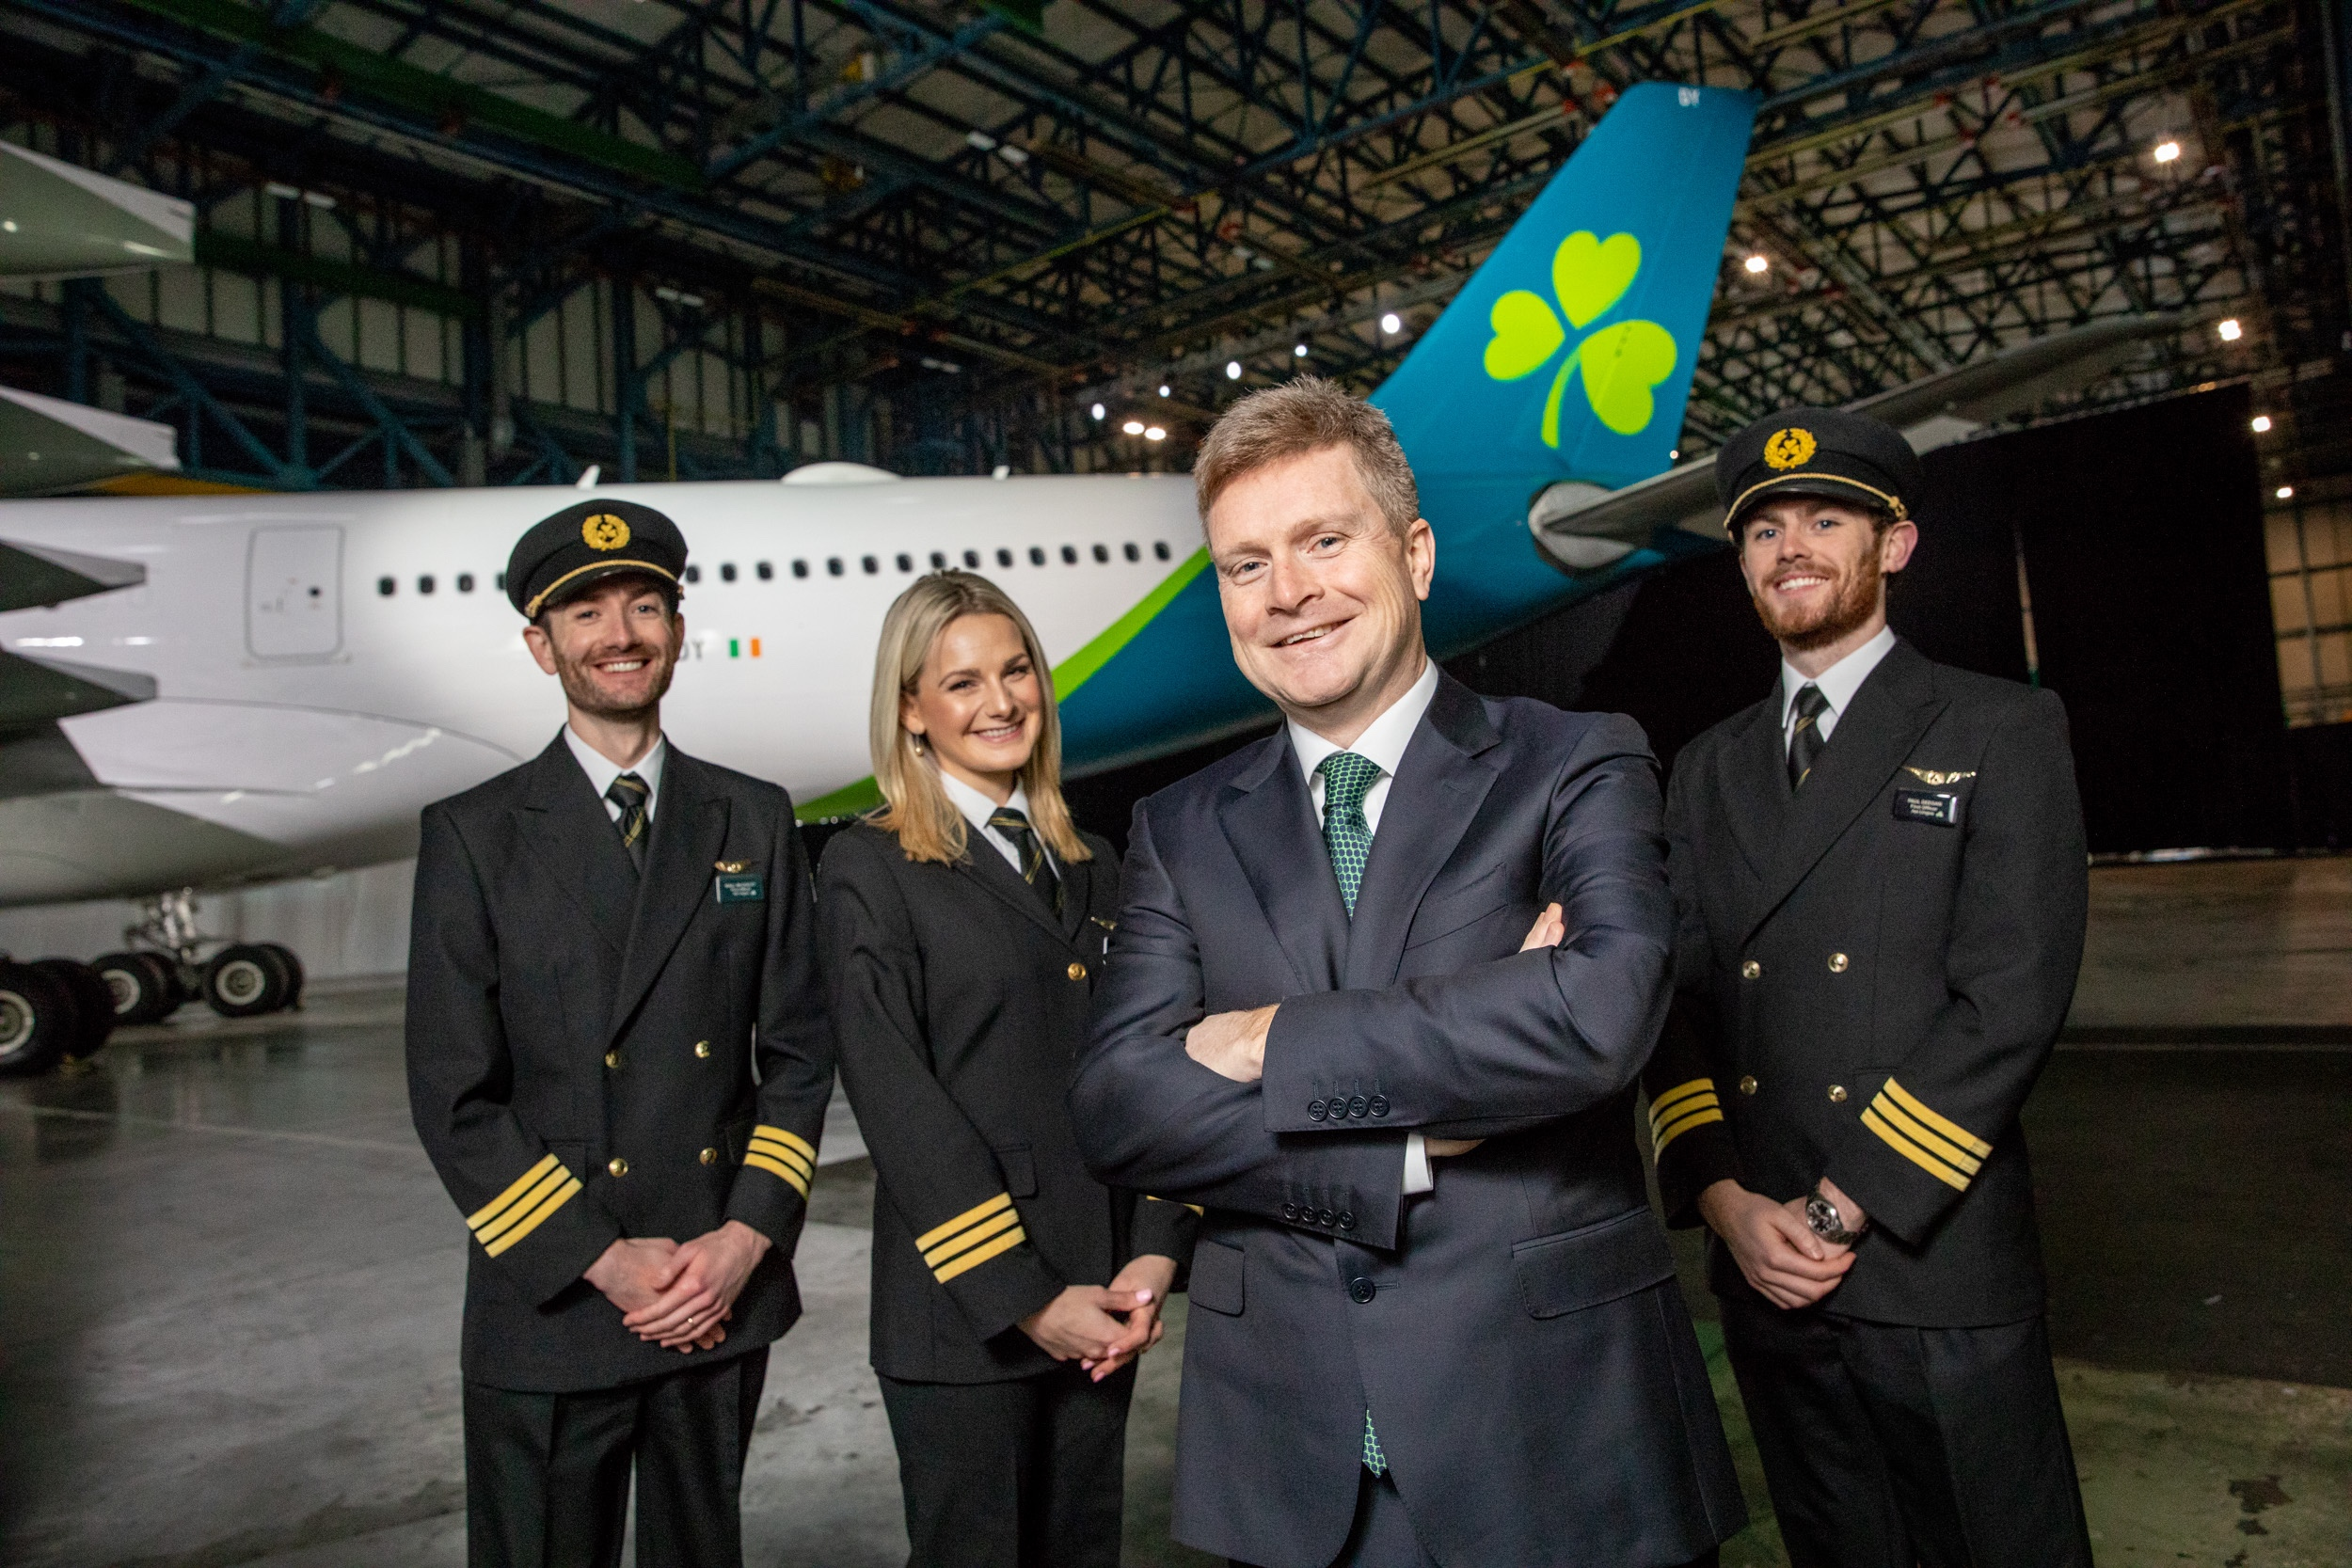 Mike Rutter, COO, Aer Lingus